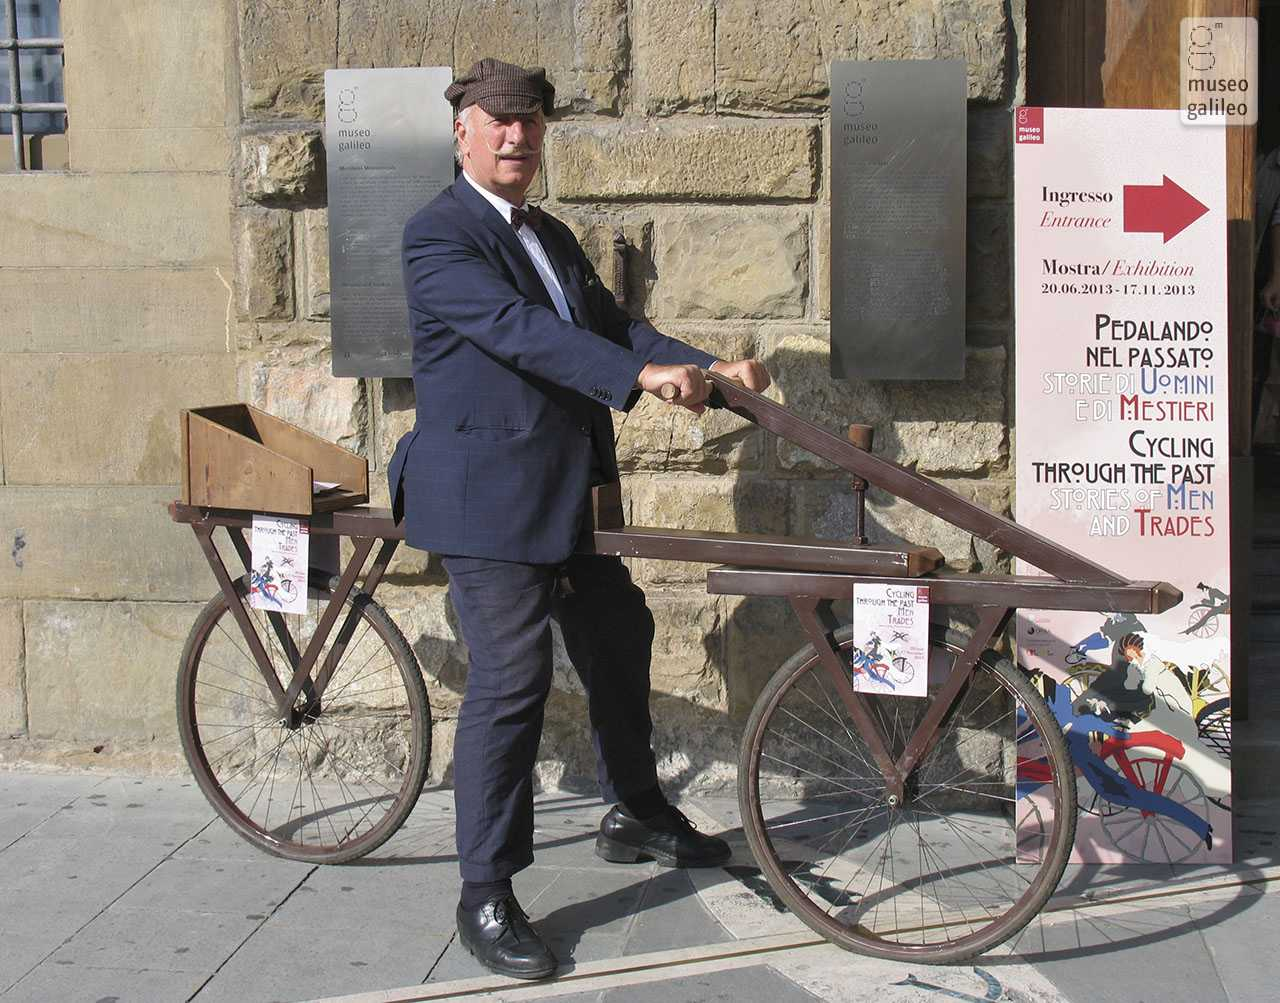 """Tutti in bicicletta"", a competition organized by the Museo Galileo of Florence for the exhibition ""Cycling through the Past"""